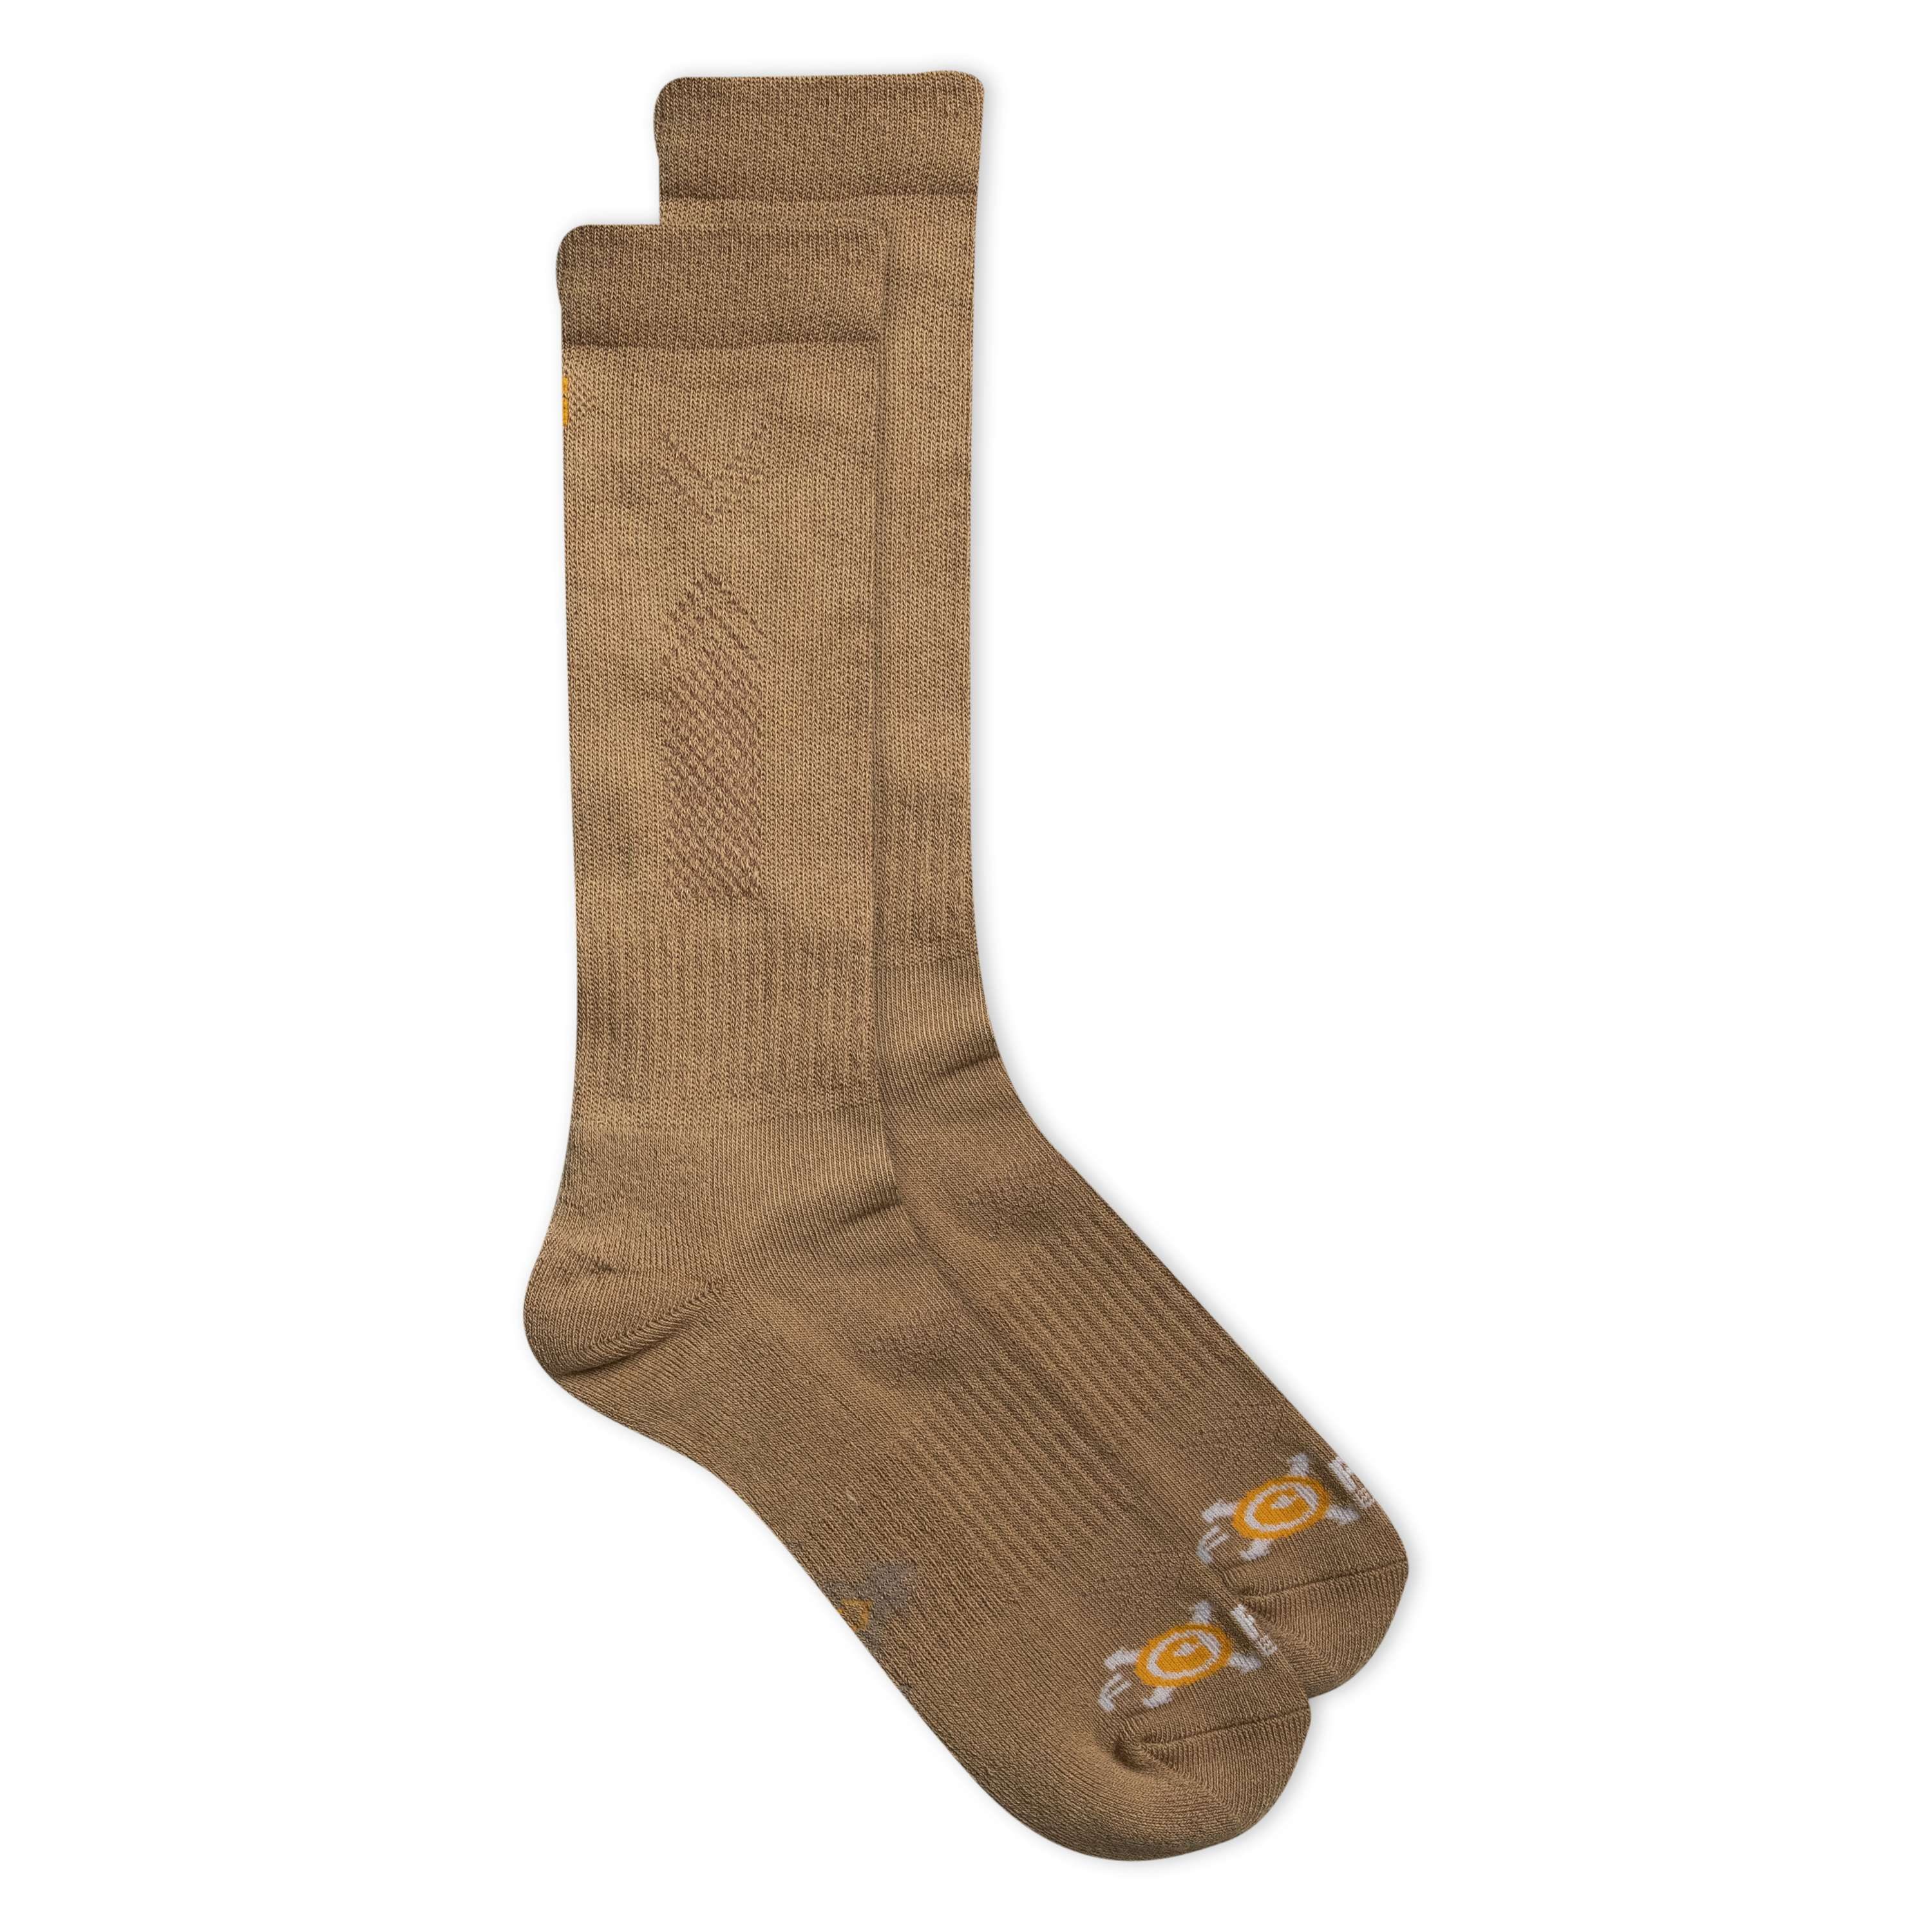 Carhartt Force Extremes Cushioned Crew Sock, 3 Pack